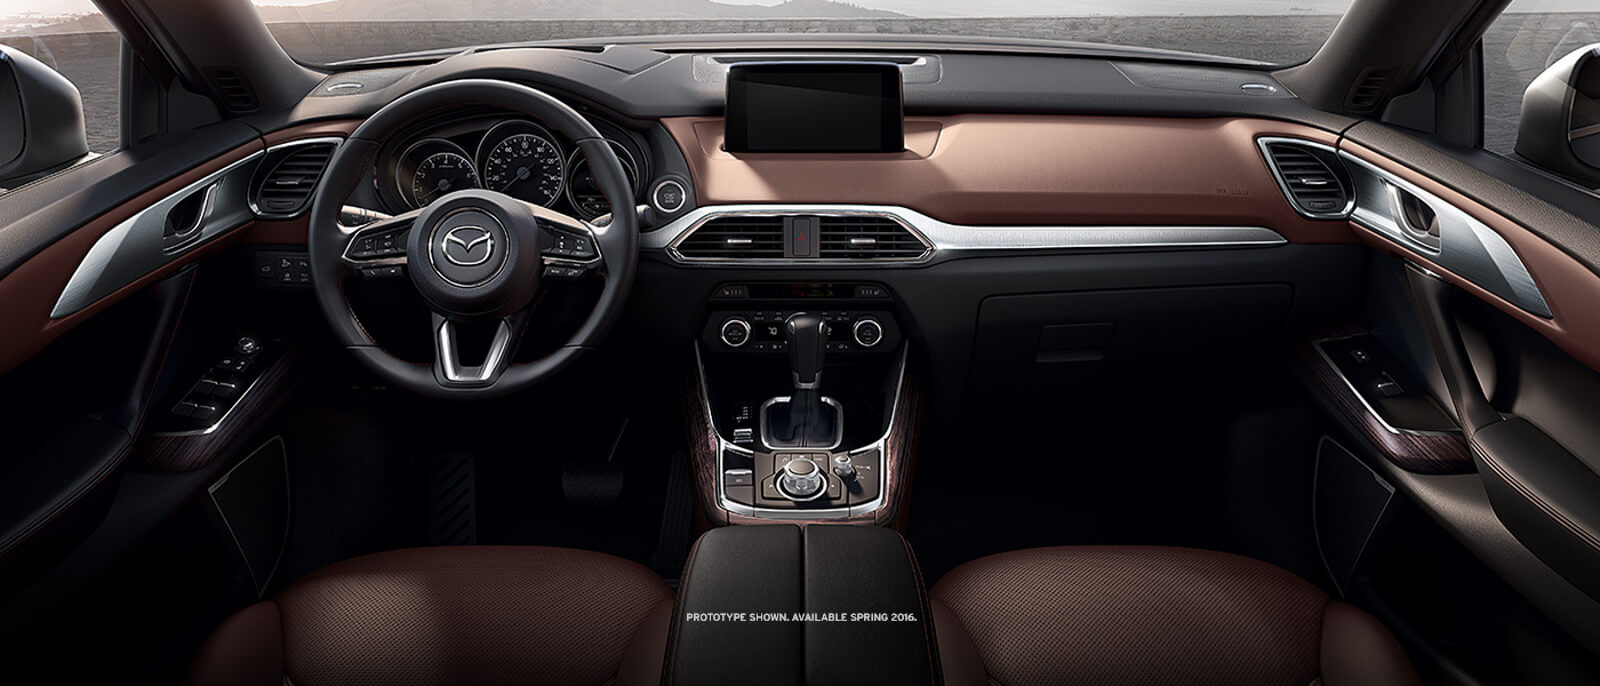 https://di-uploads-pod1.dealerinspire.com/coxmazdaredesign1/uploads/2016/01/2016-Mazda-CX-9-Interior.jpg